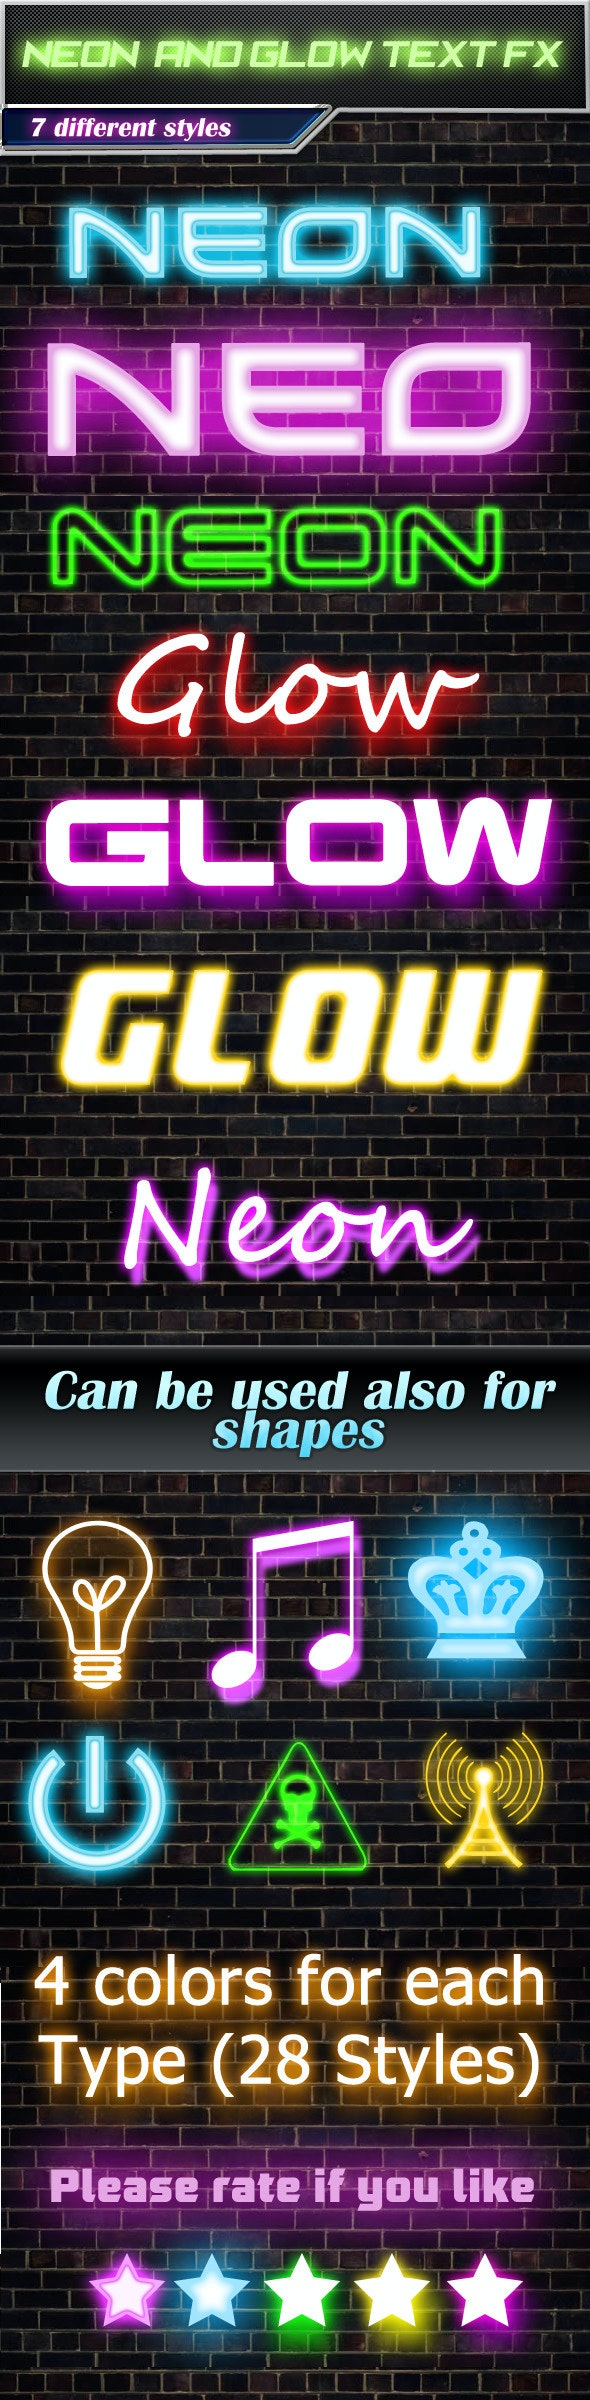 28 Neon And Glow Text Effects - Text Effects Actions